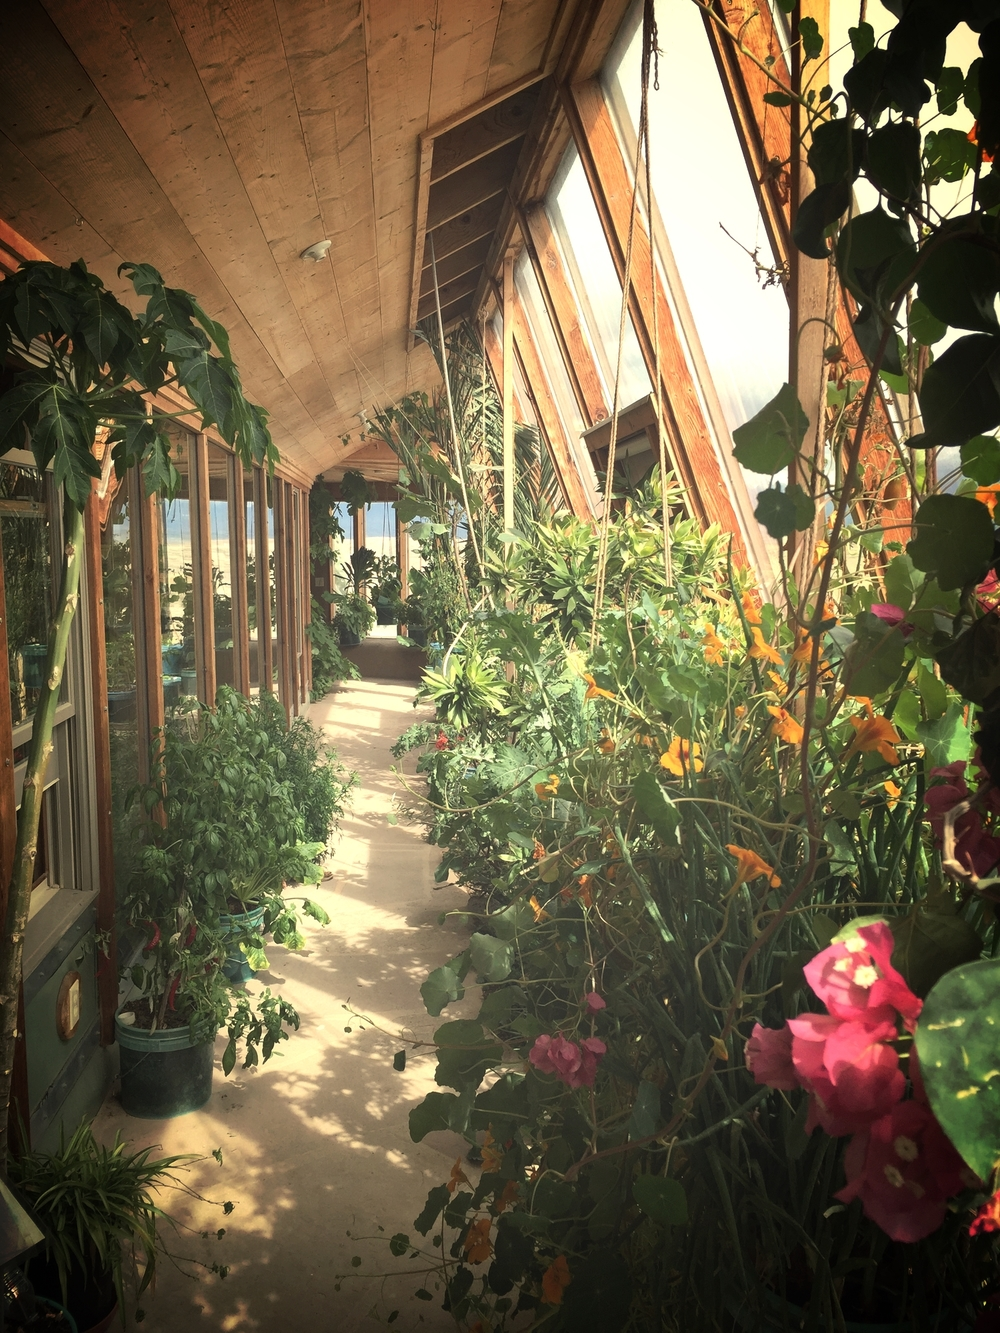 Finished green house at maximum production. Grows edible plants year round. Photo by Matty Liot.